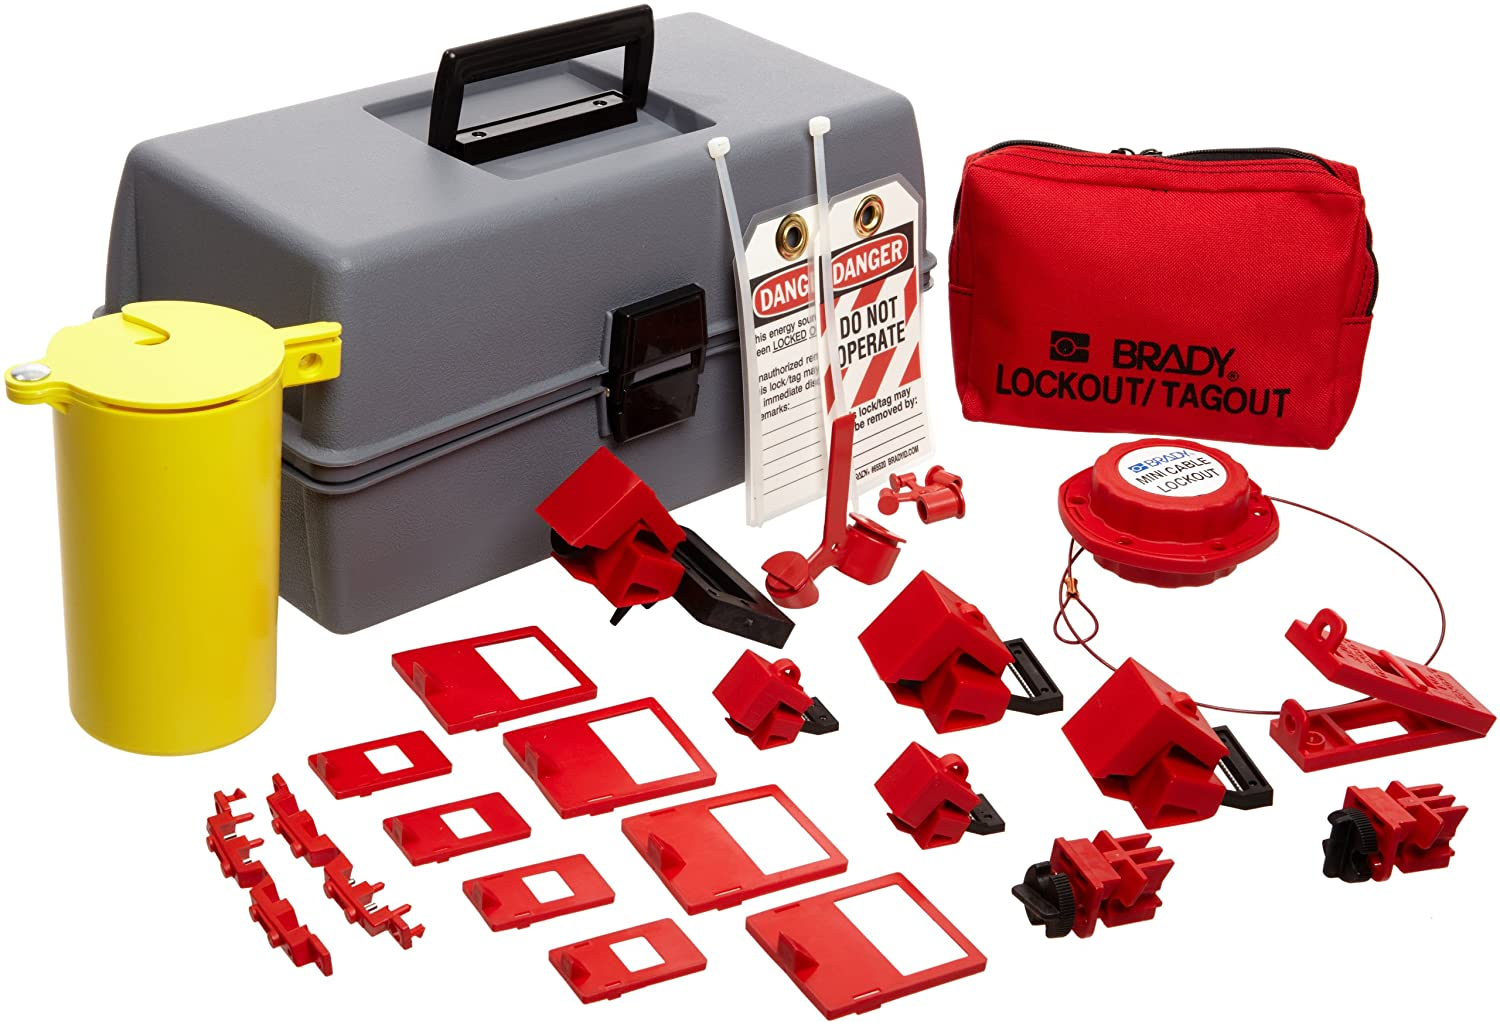 Brady Electrical Lockout Toolbox Kit Includes Safety Padlocks and Tags